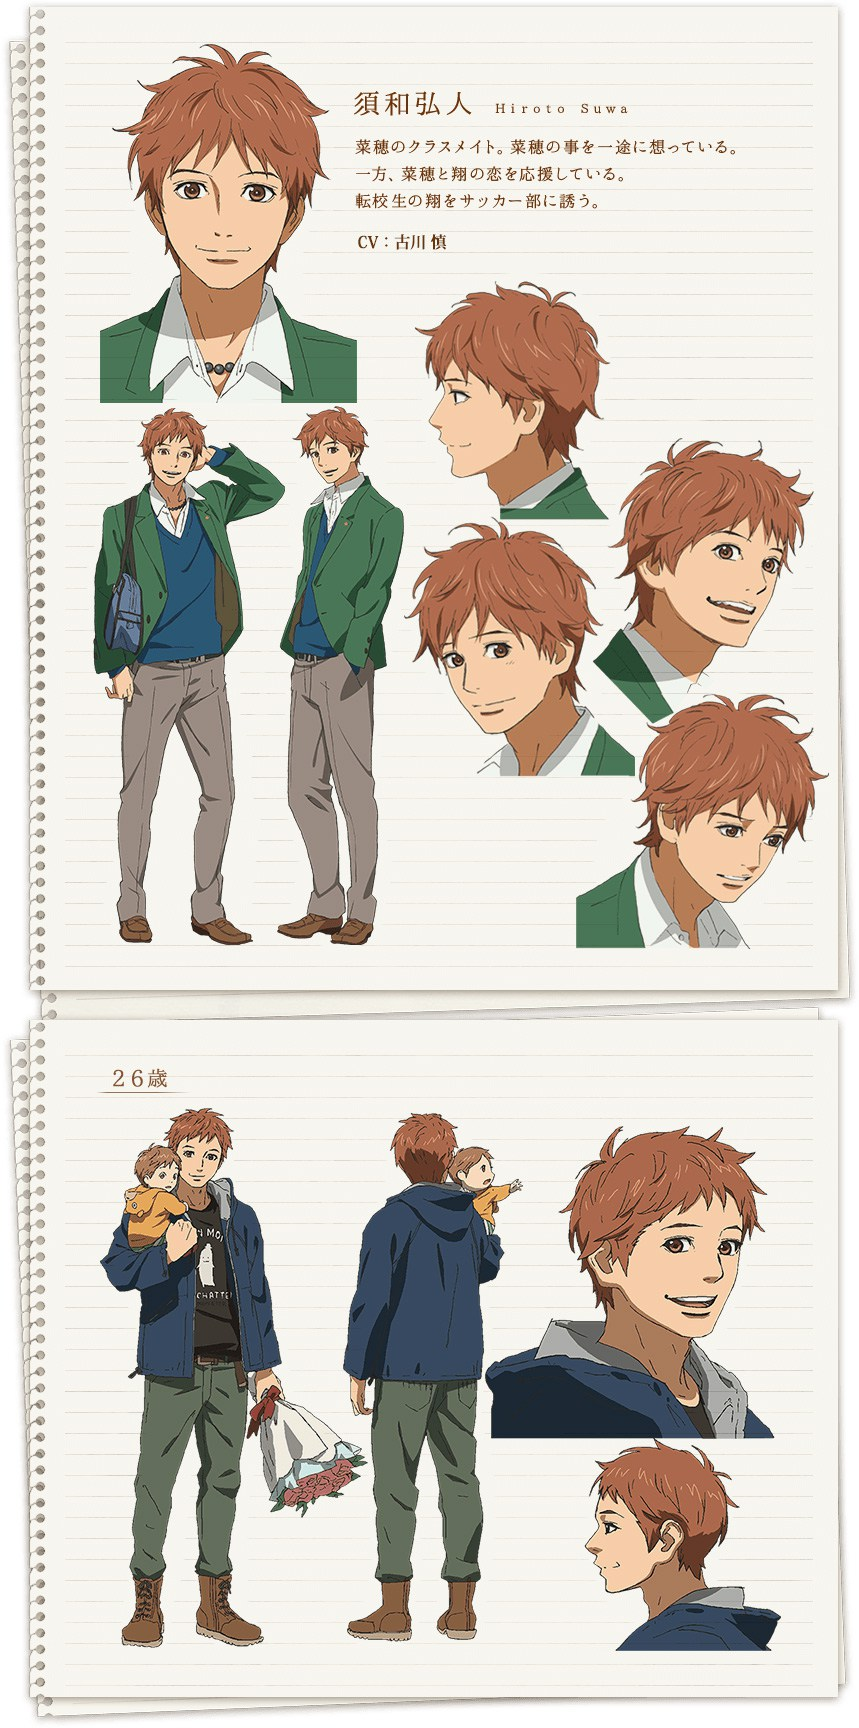 Orange-Anime-Character-Designs-Hiroto-Suwa